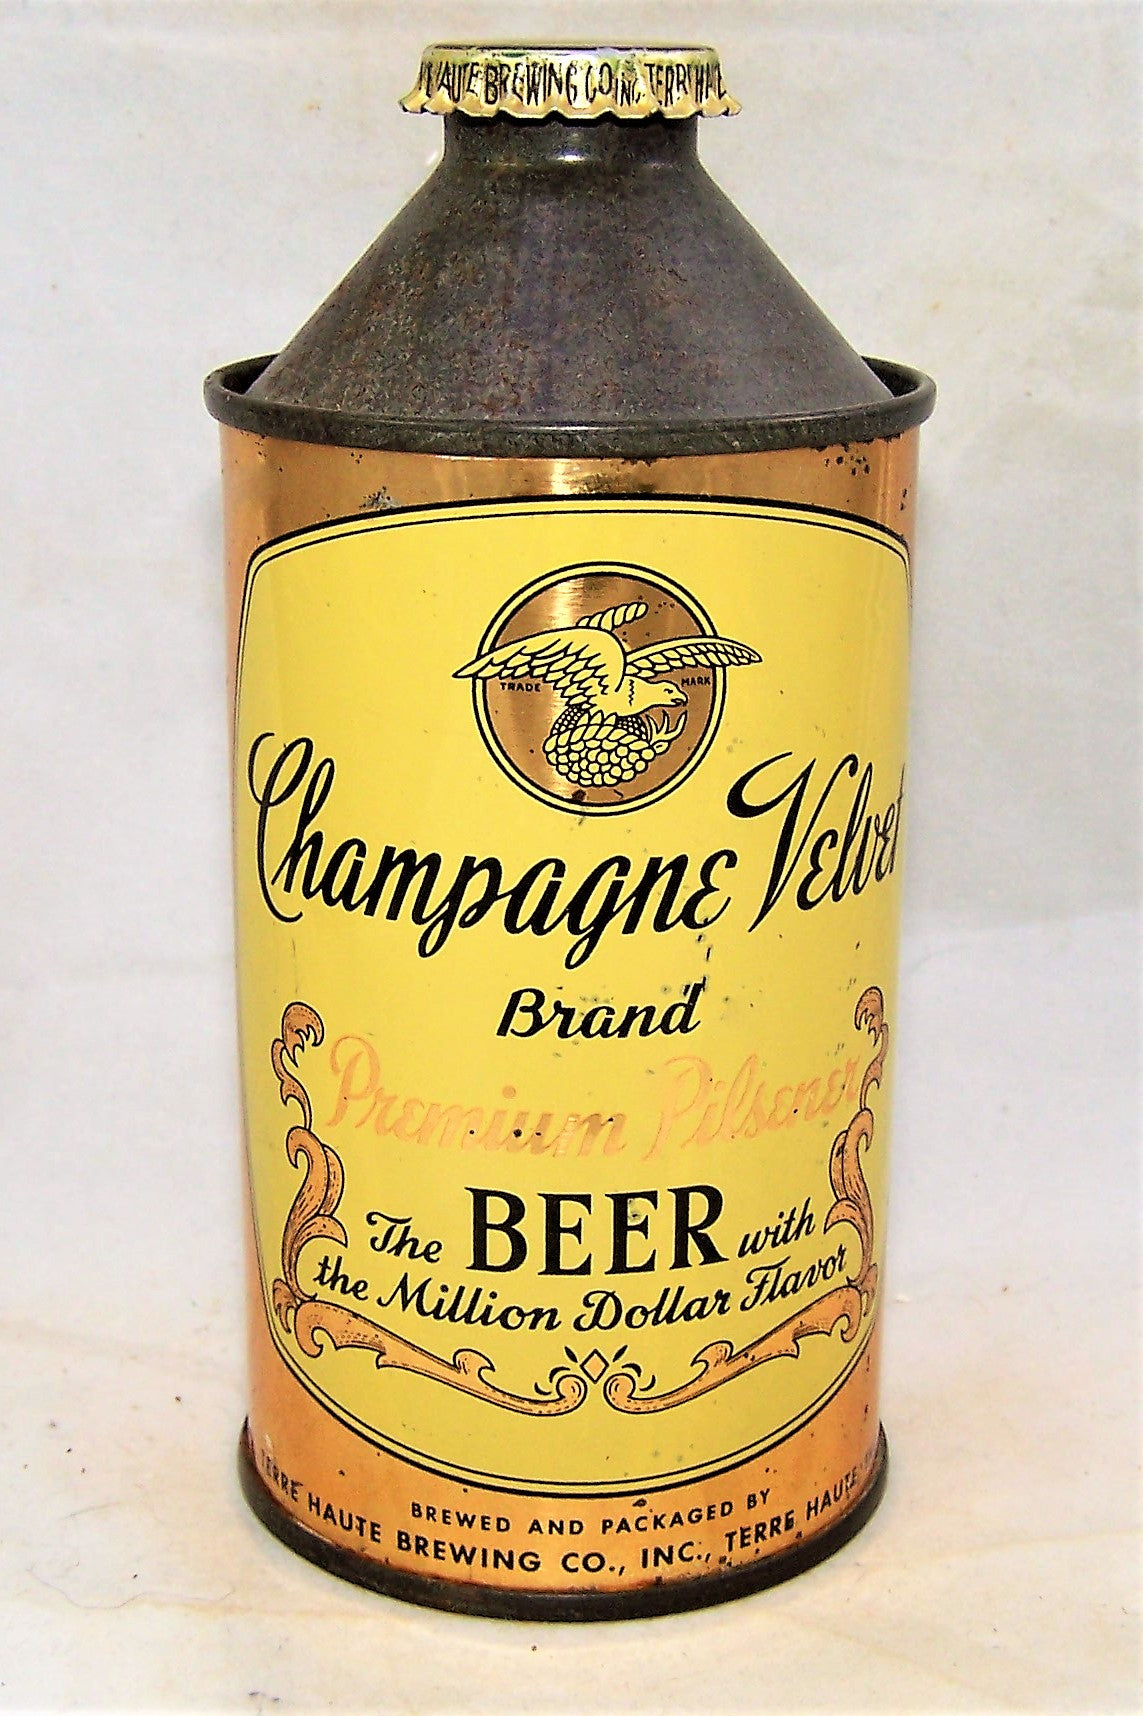 Champagne Velvet (1944 on Policy) with original Crown, USBC 157-06, Grade 1  Sold on 11/08/19